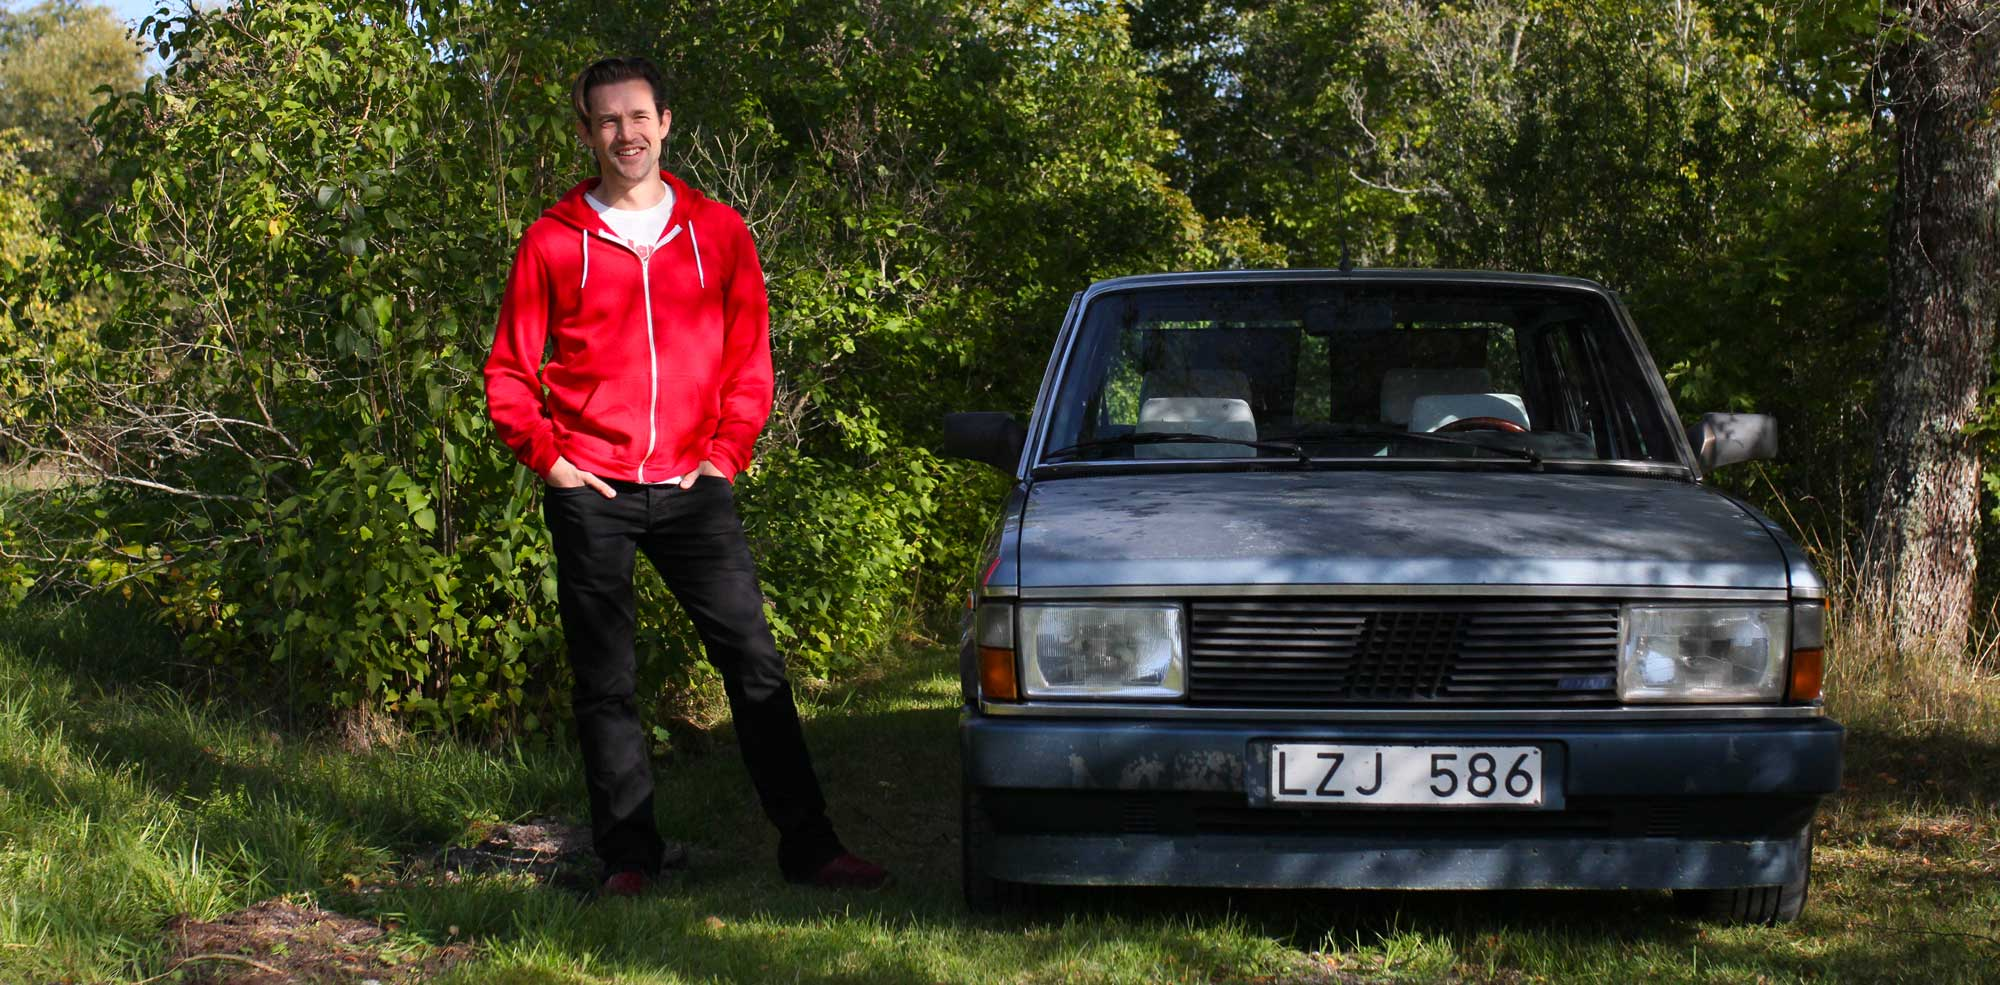 Per Eldh and his fantastic FIAT ARgenta